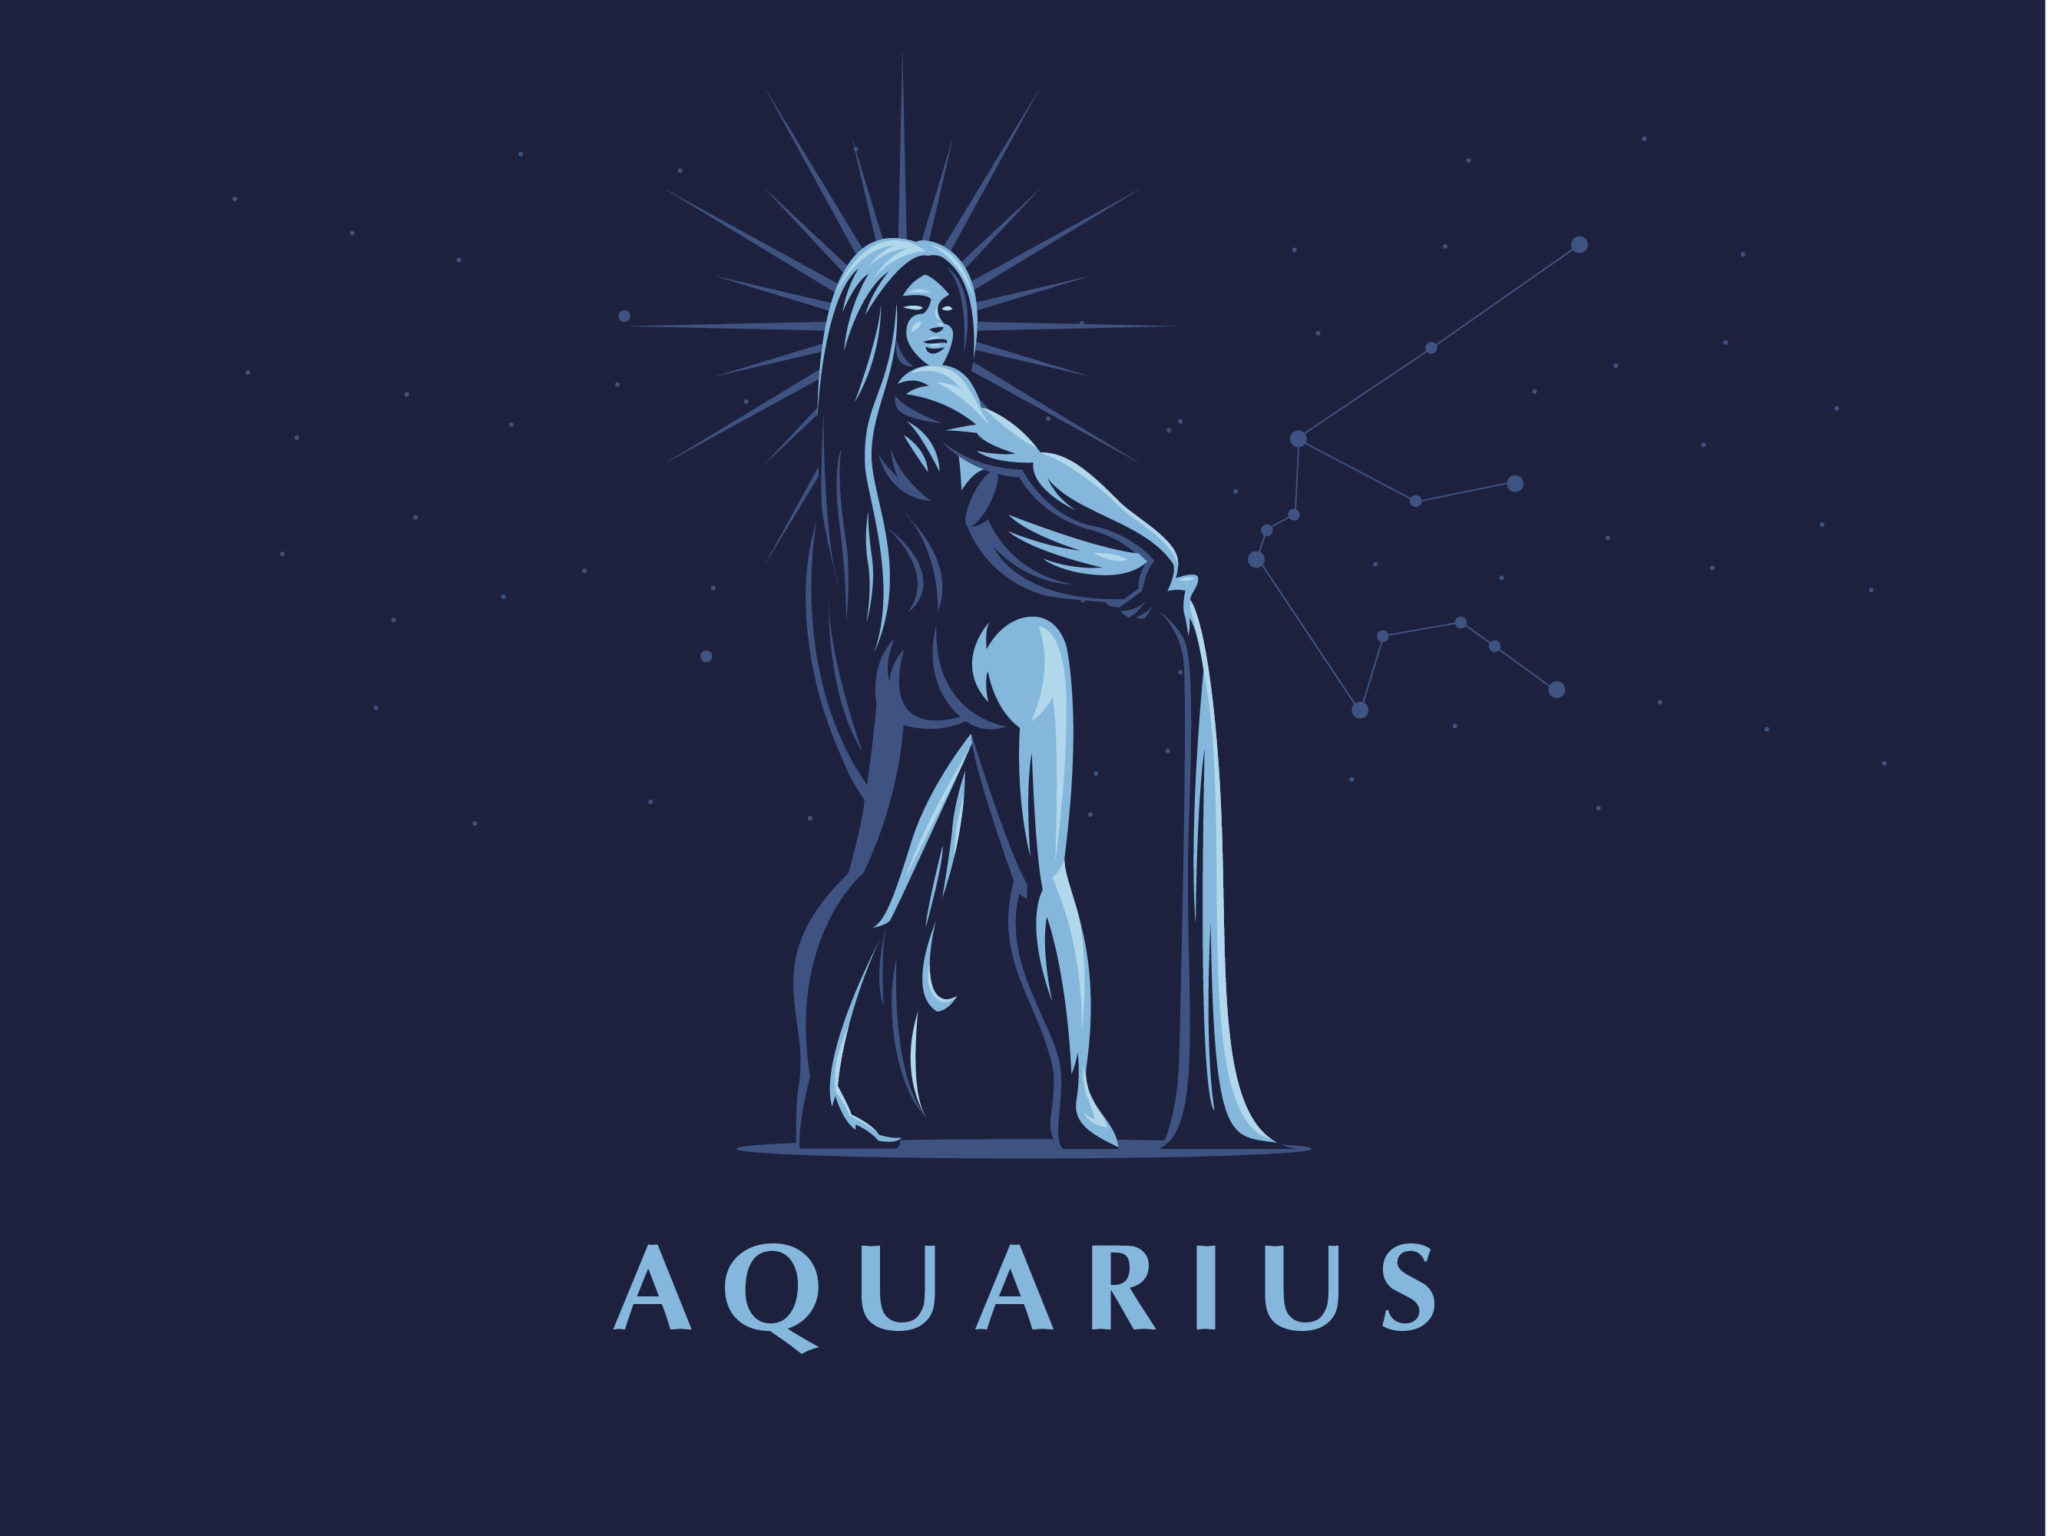 10 Reasons Aquarius is the Best Zodiac Sign